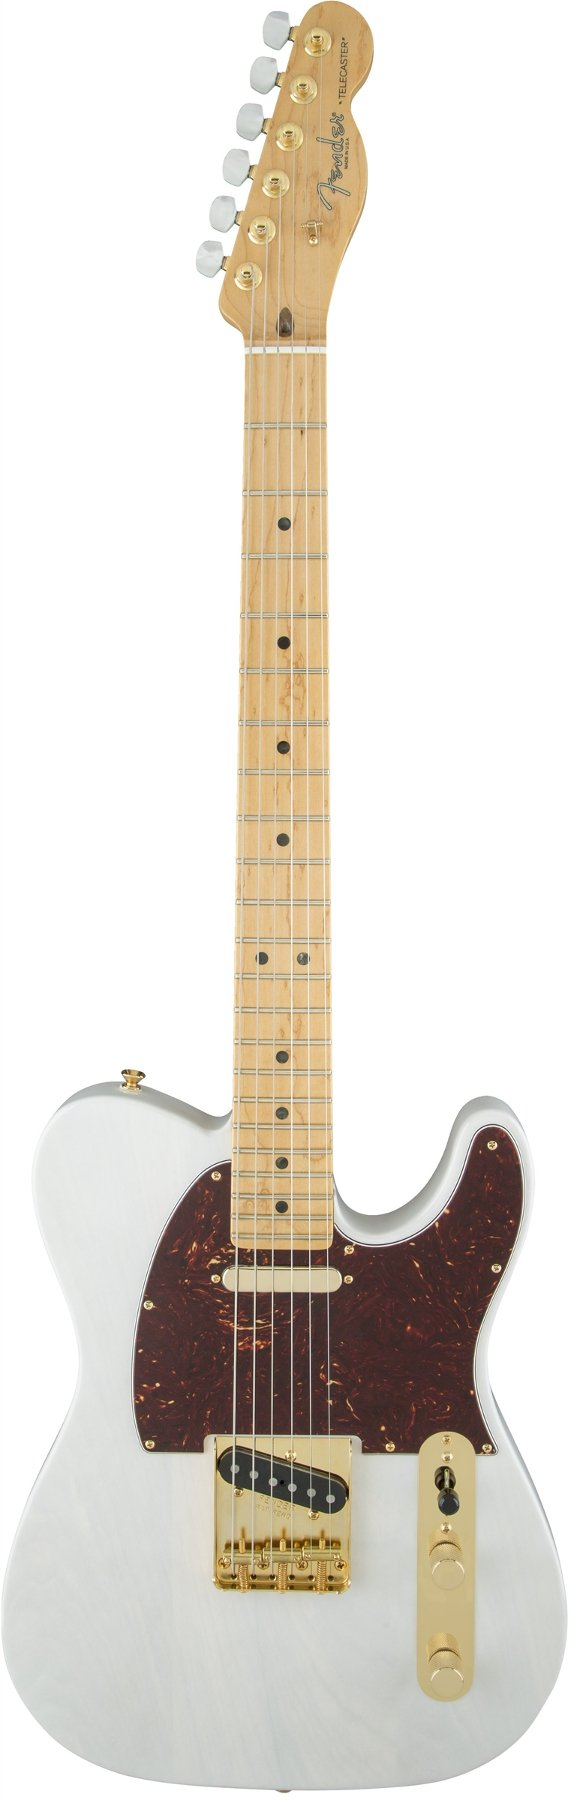 Electric Guitar with Maple Fingerboard, White Blonde Finish